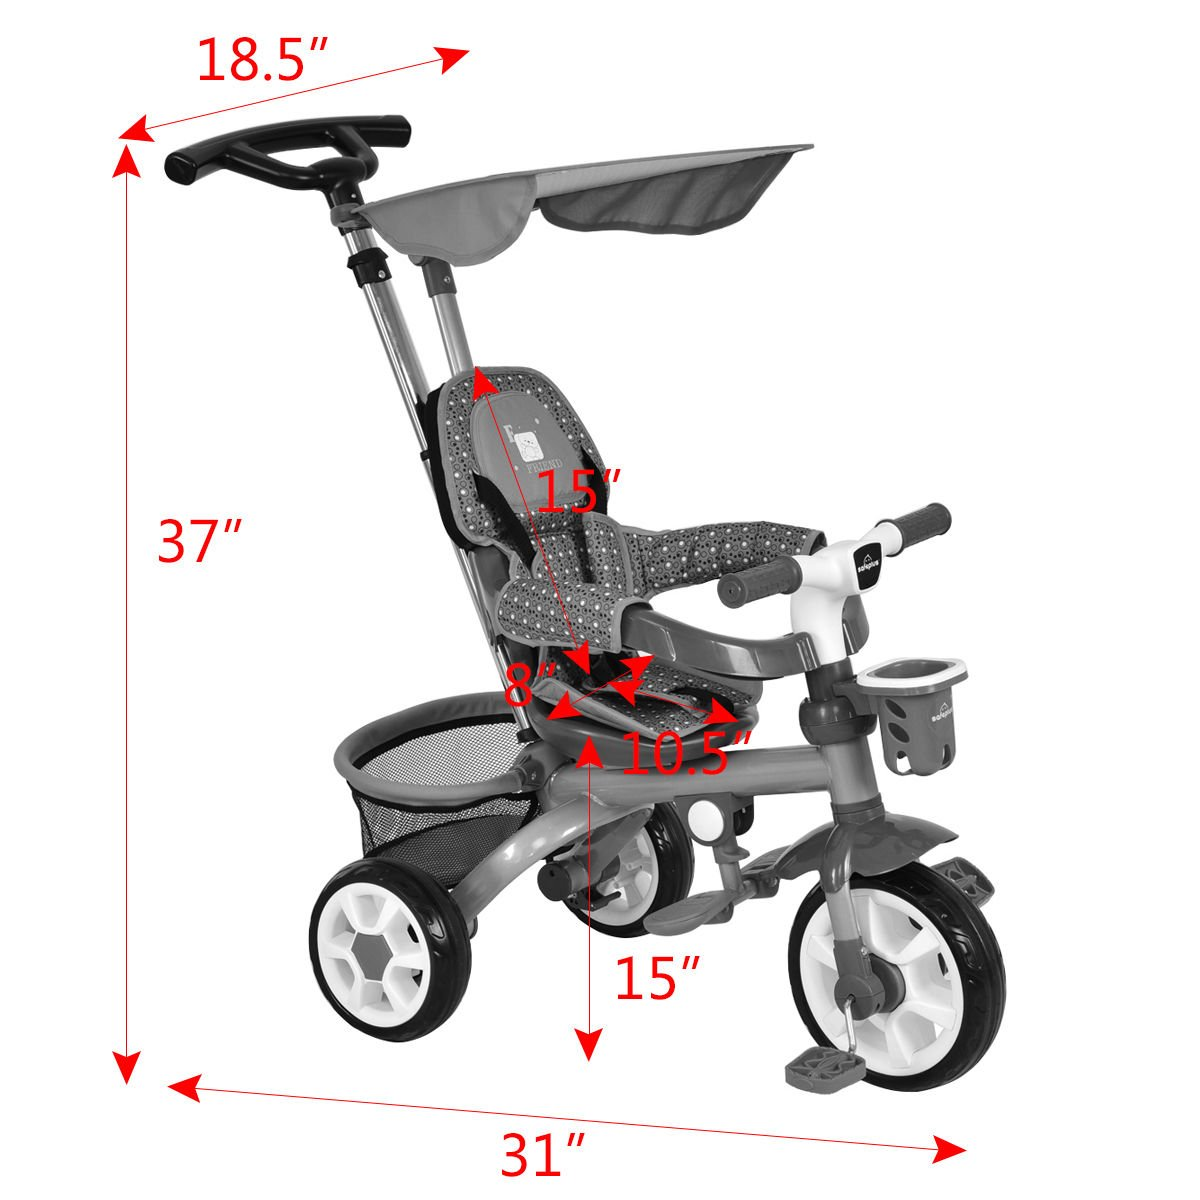 4-In-1 Kids Baby Stroller Tricycle Detachable Learning Toy Bike Canopy Basket by Eight24hours (Image #2)